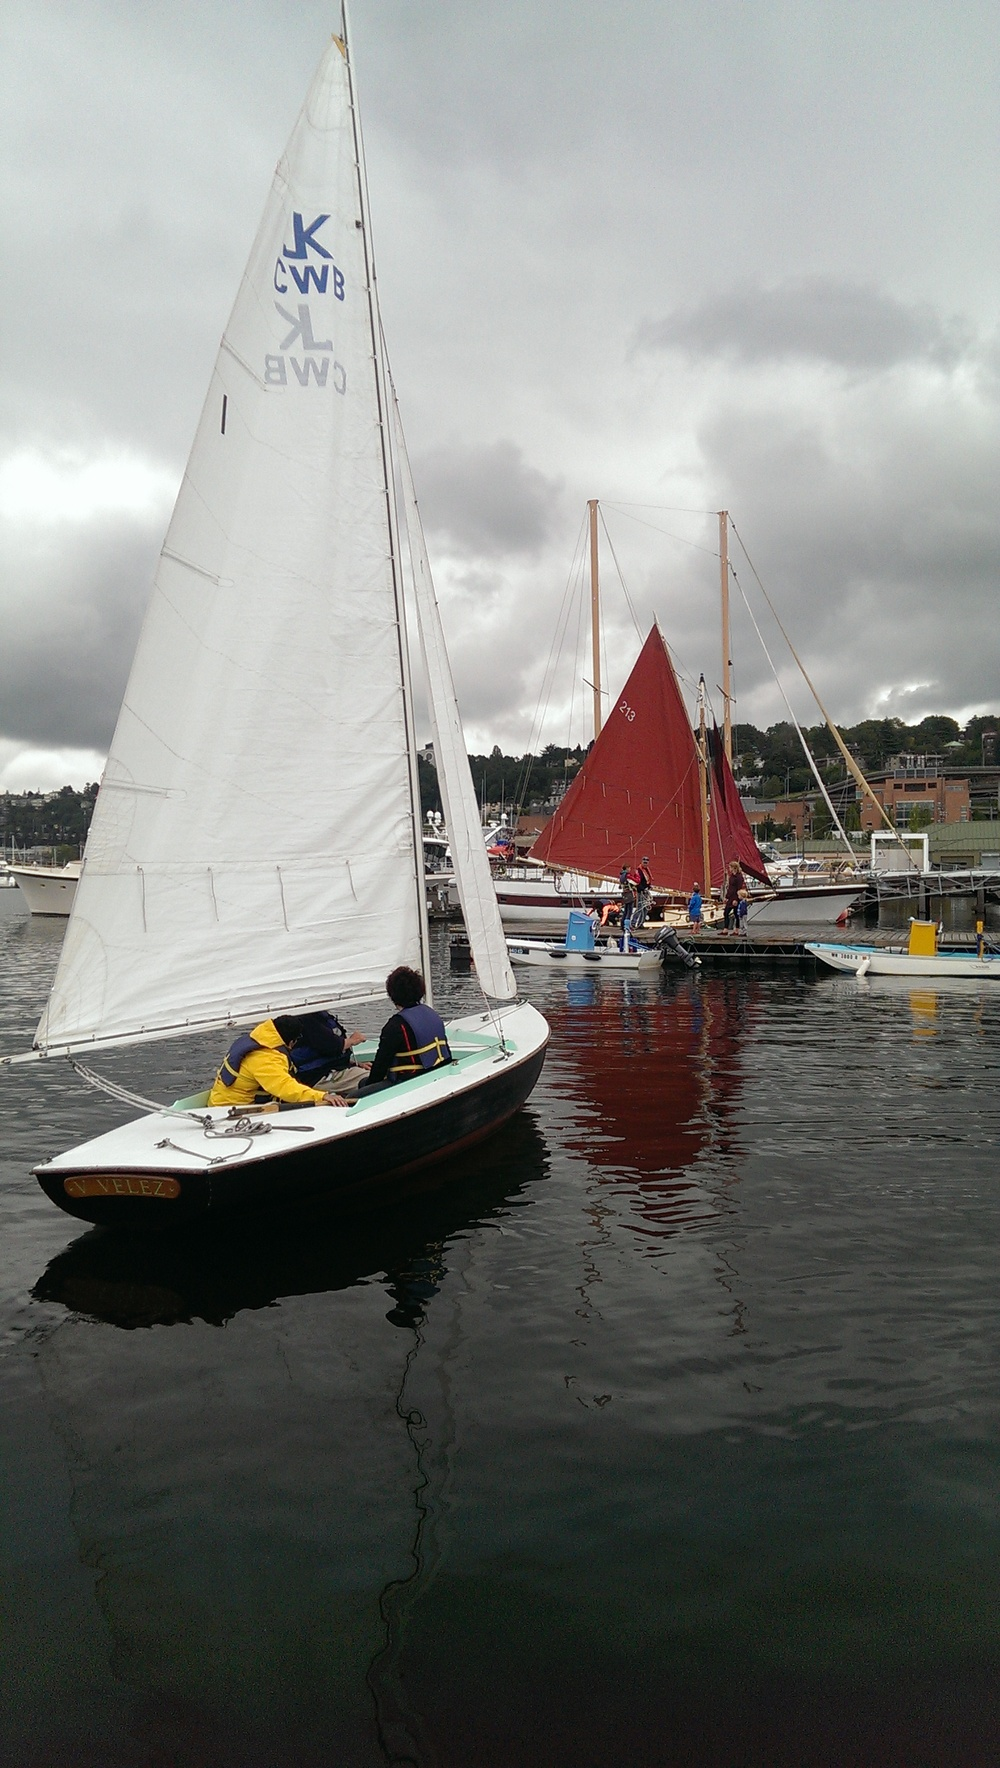 22 - Sail Boats - Amie on right